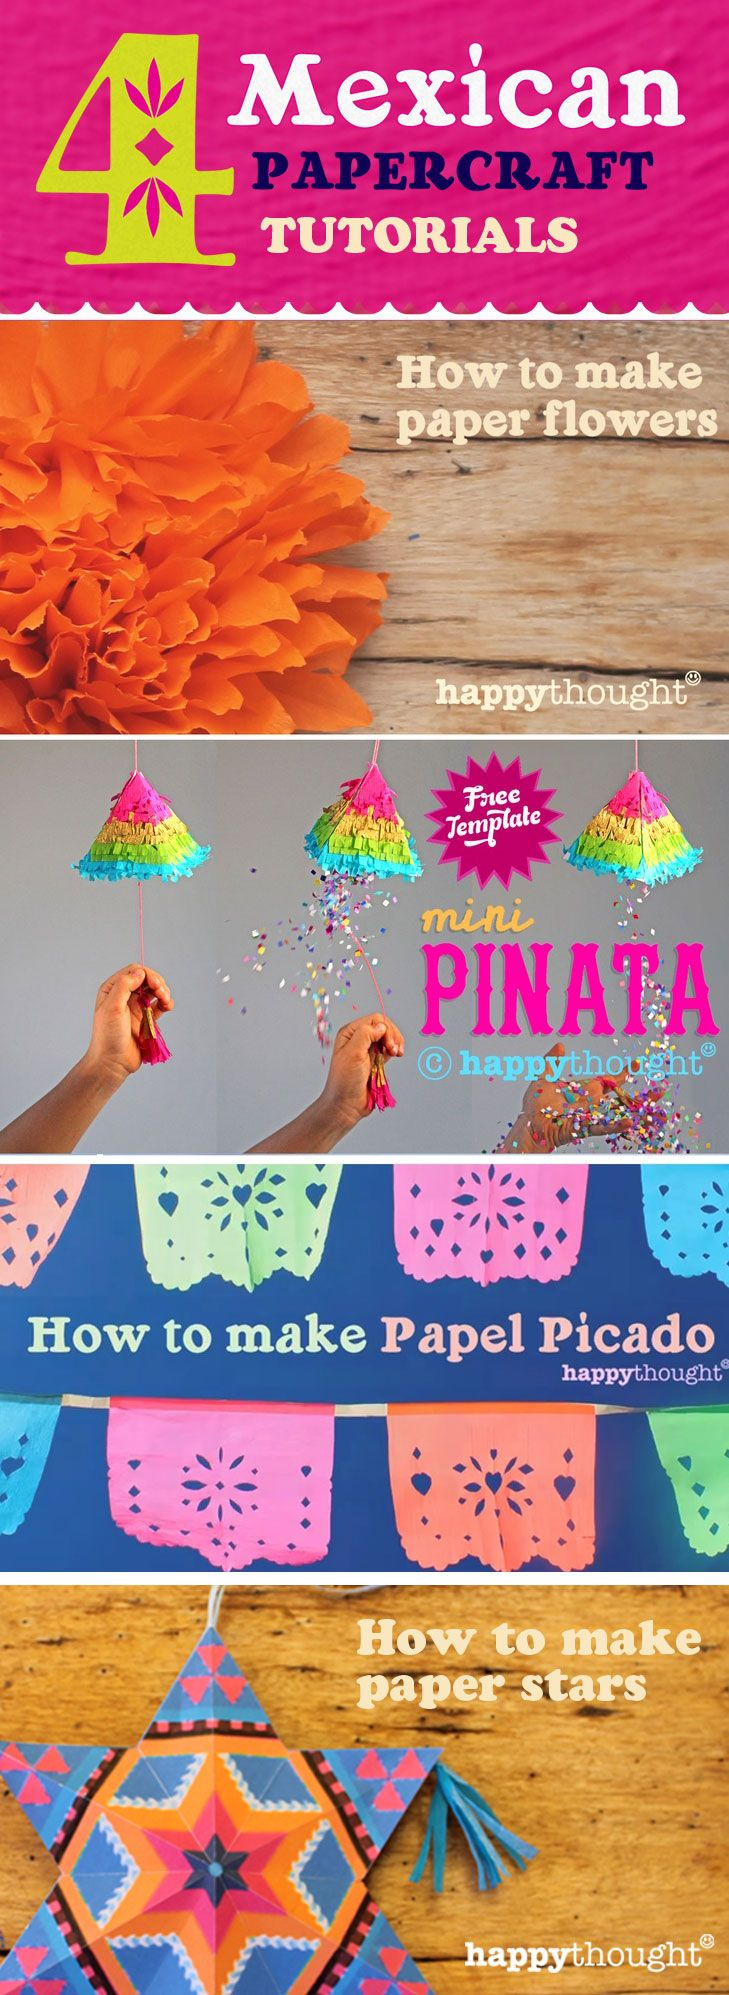 4 fun and easy to make mexican paper craft decorations!